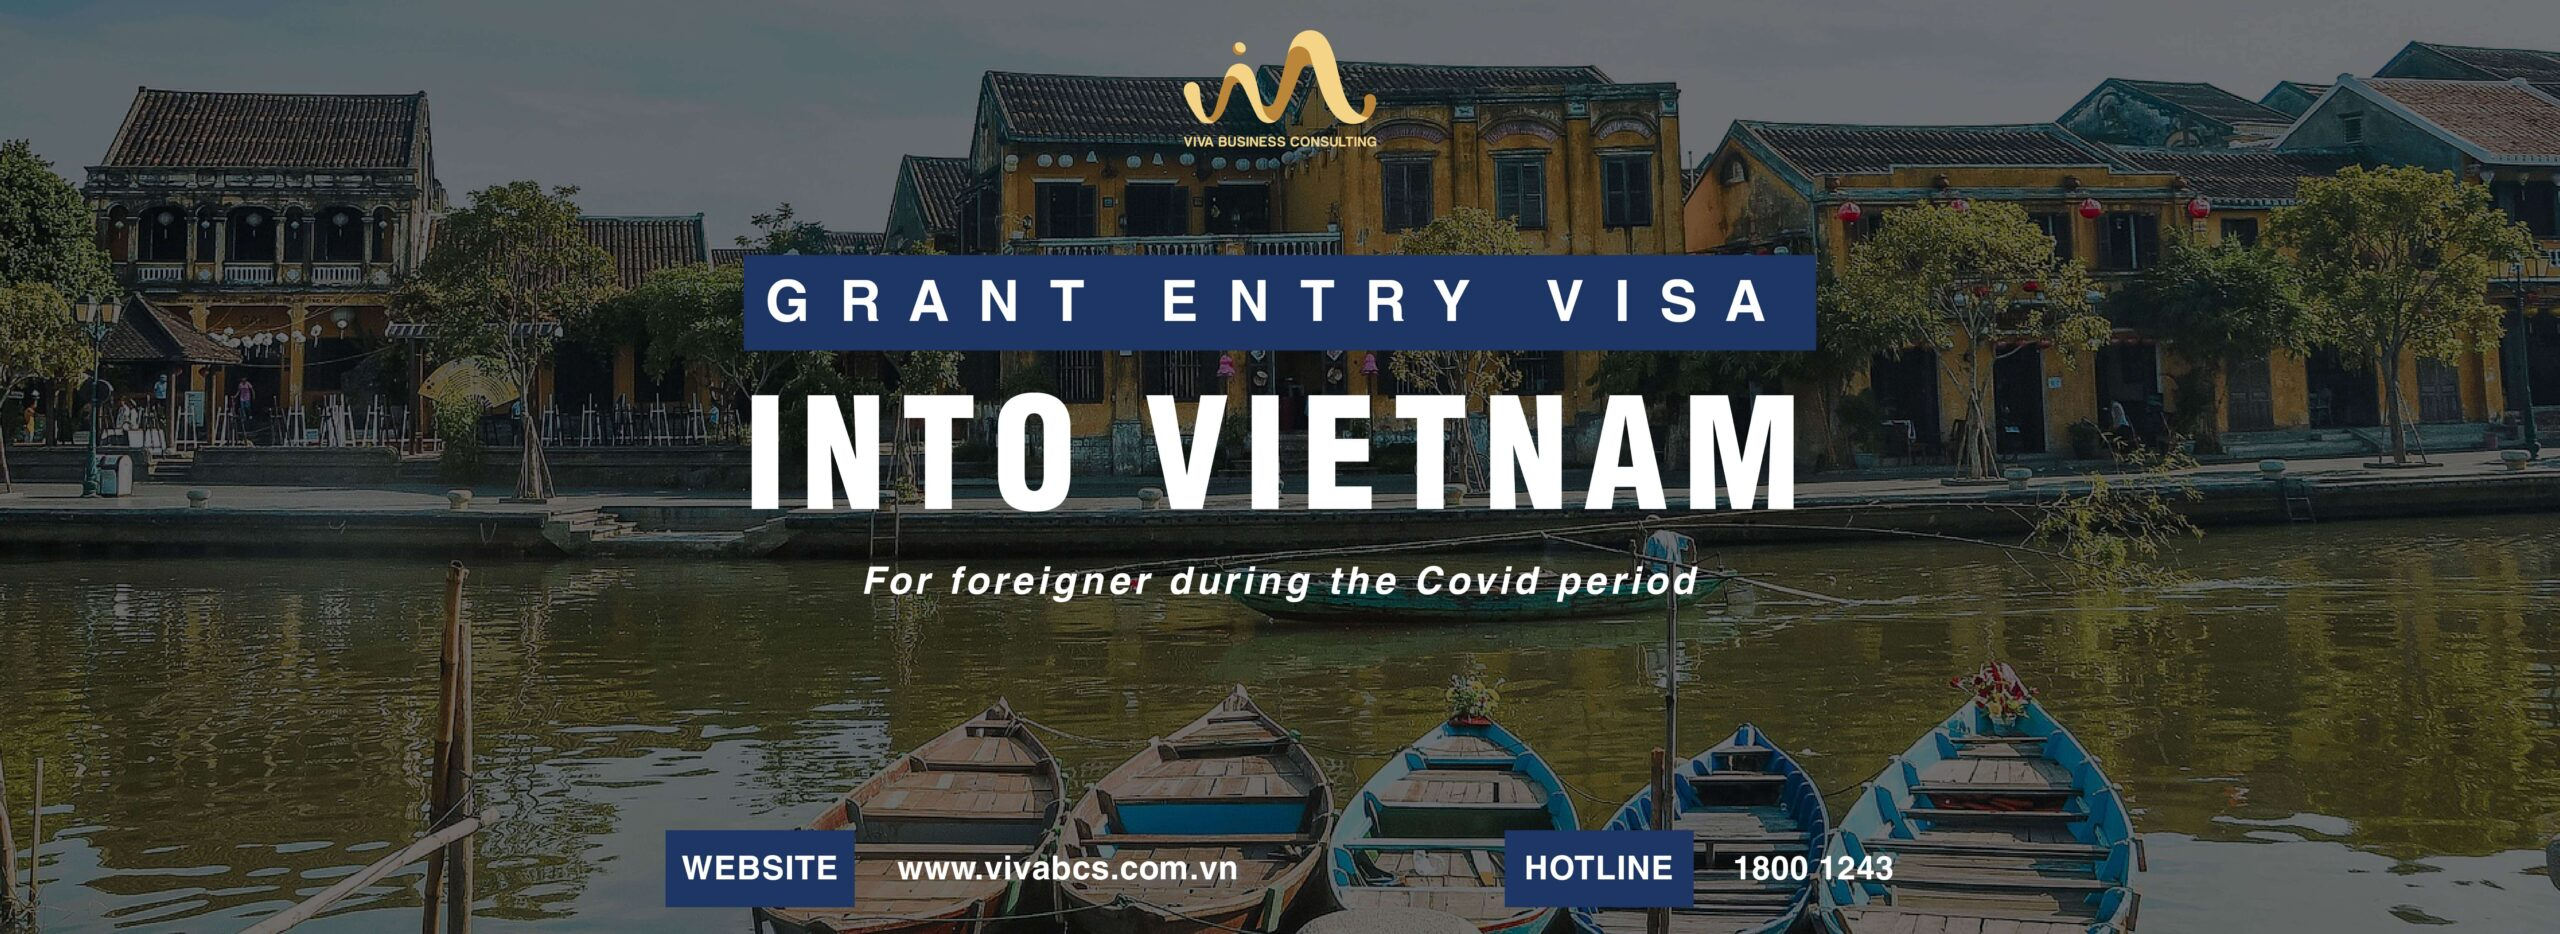 EXPAT entry into Vietnam during covid period